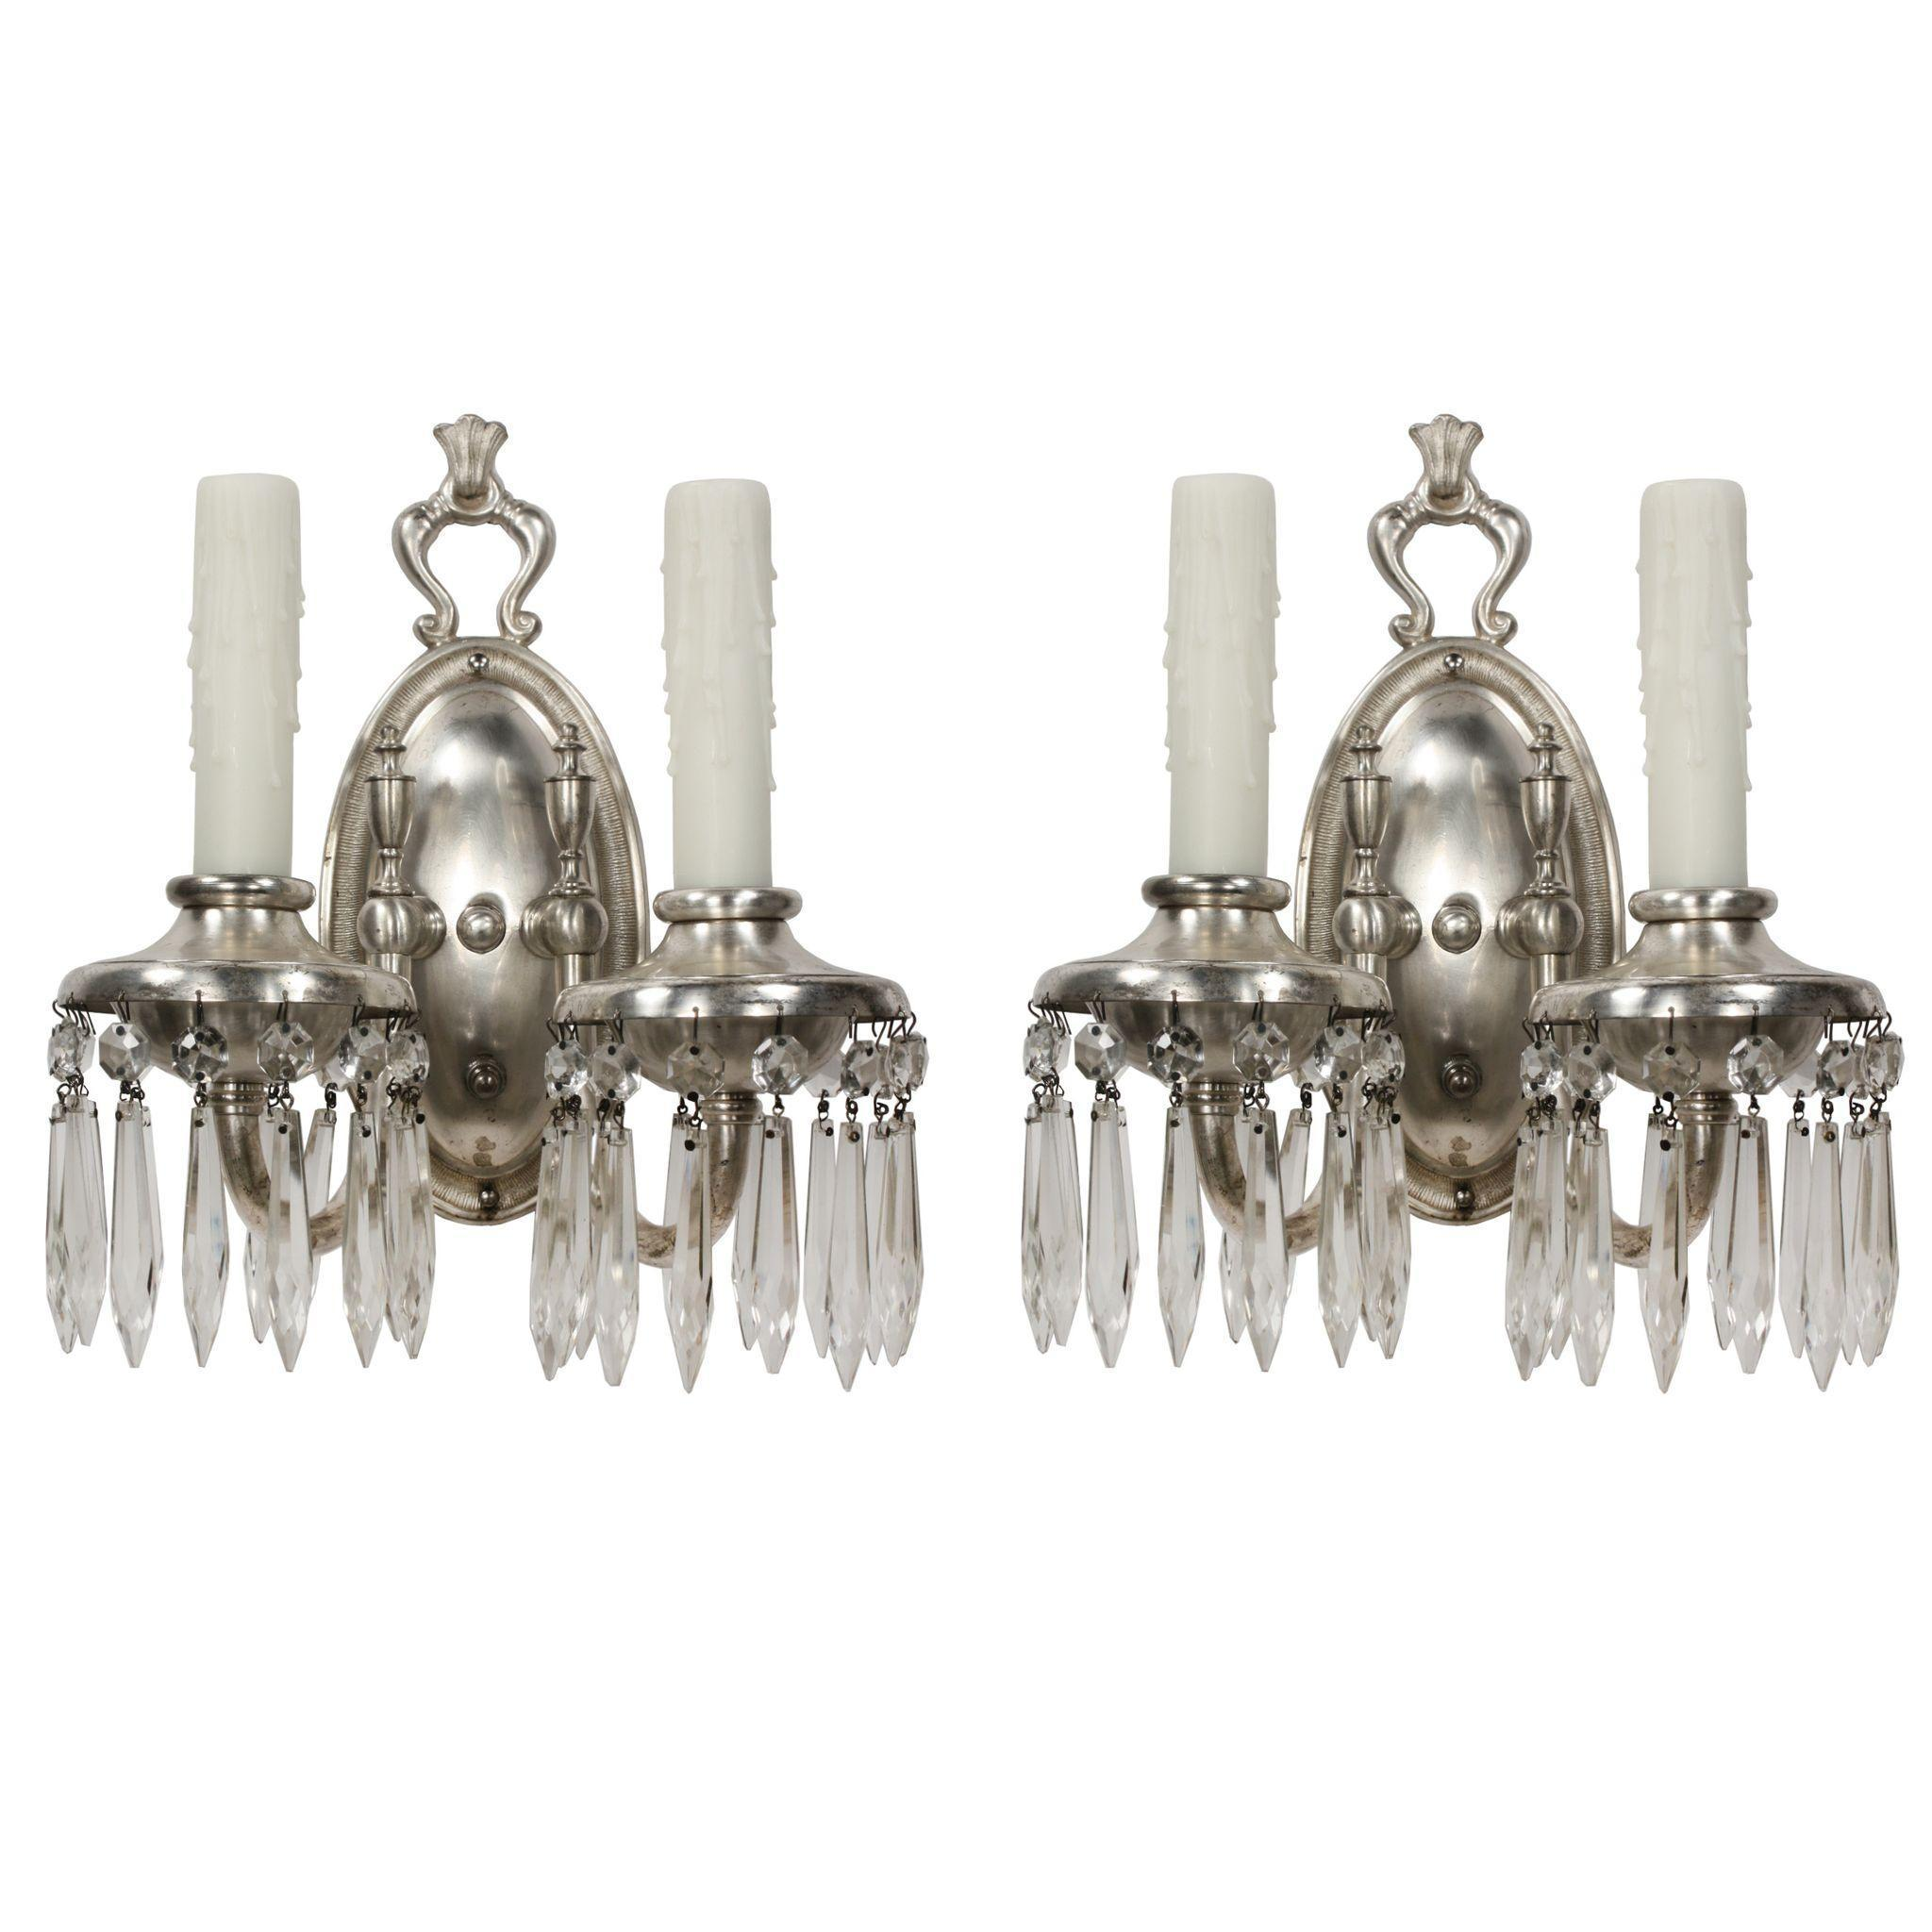 Pair of Antique Double-Arm Silver Plated Sconces